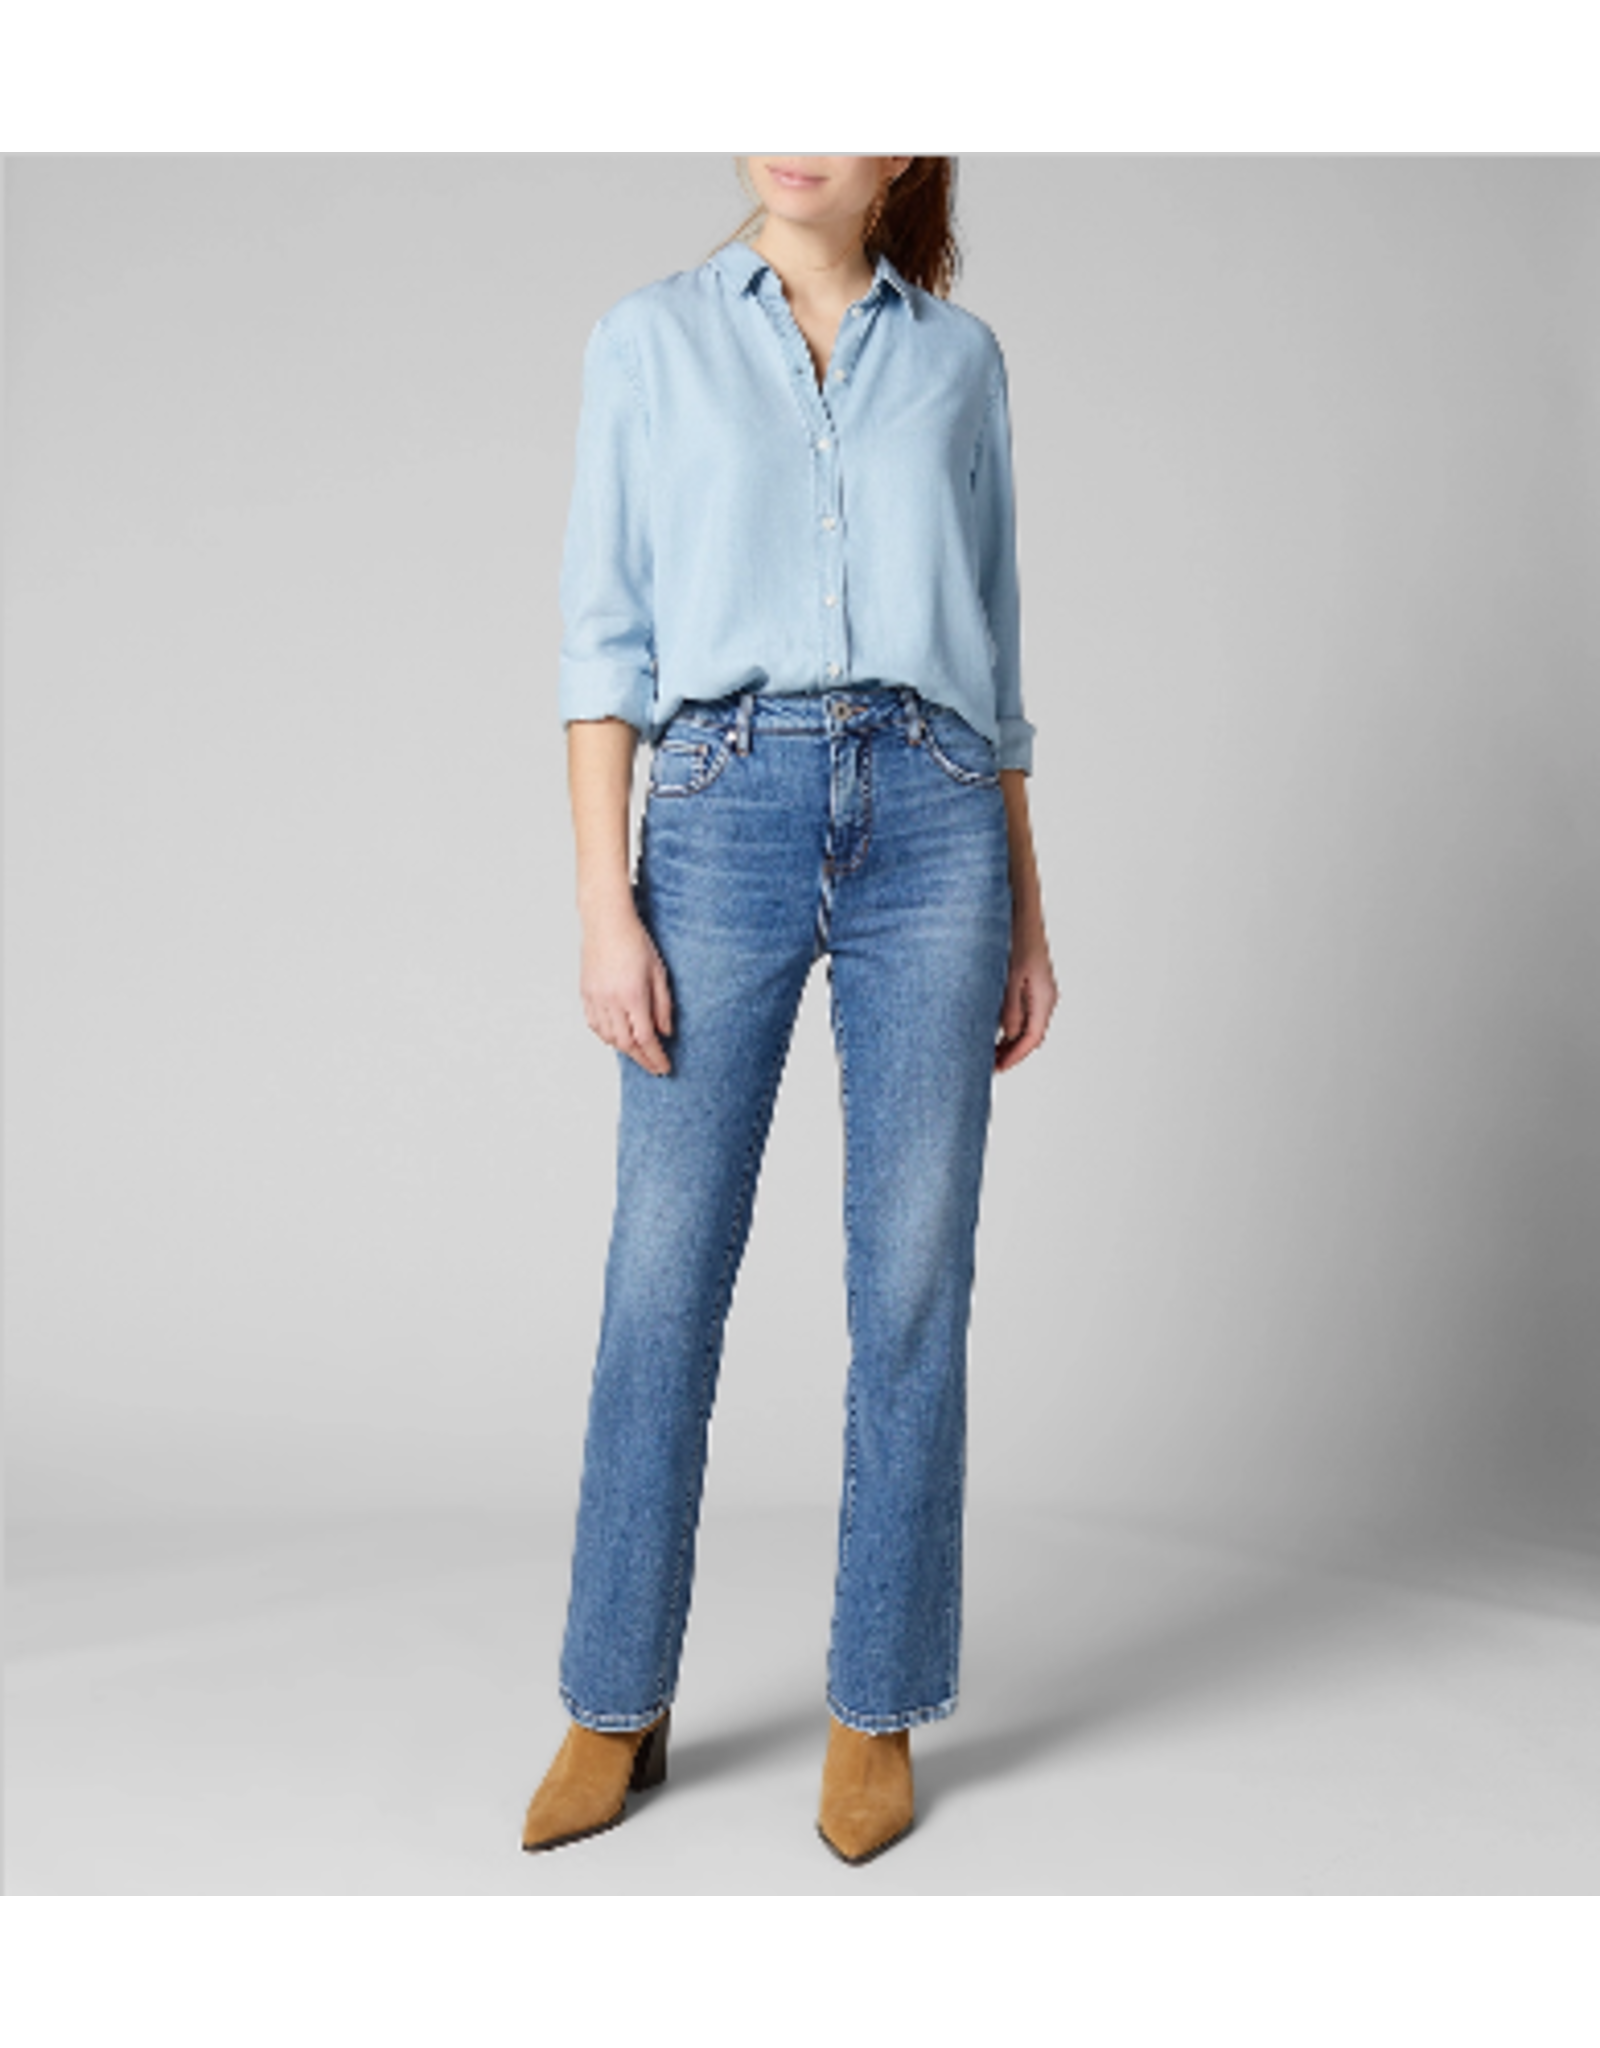 Jag Jeans Phoebe High Rise Bootcut Jeans